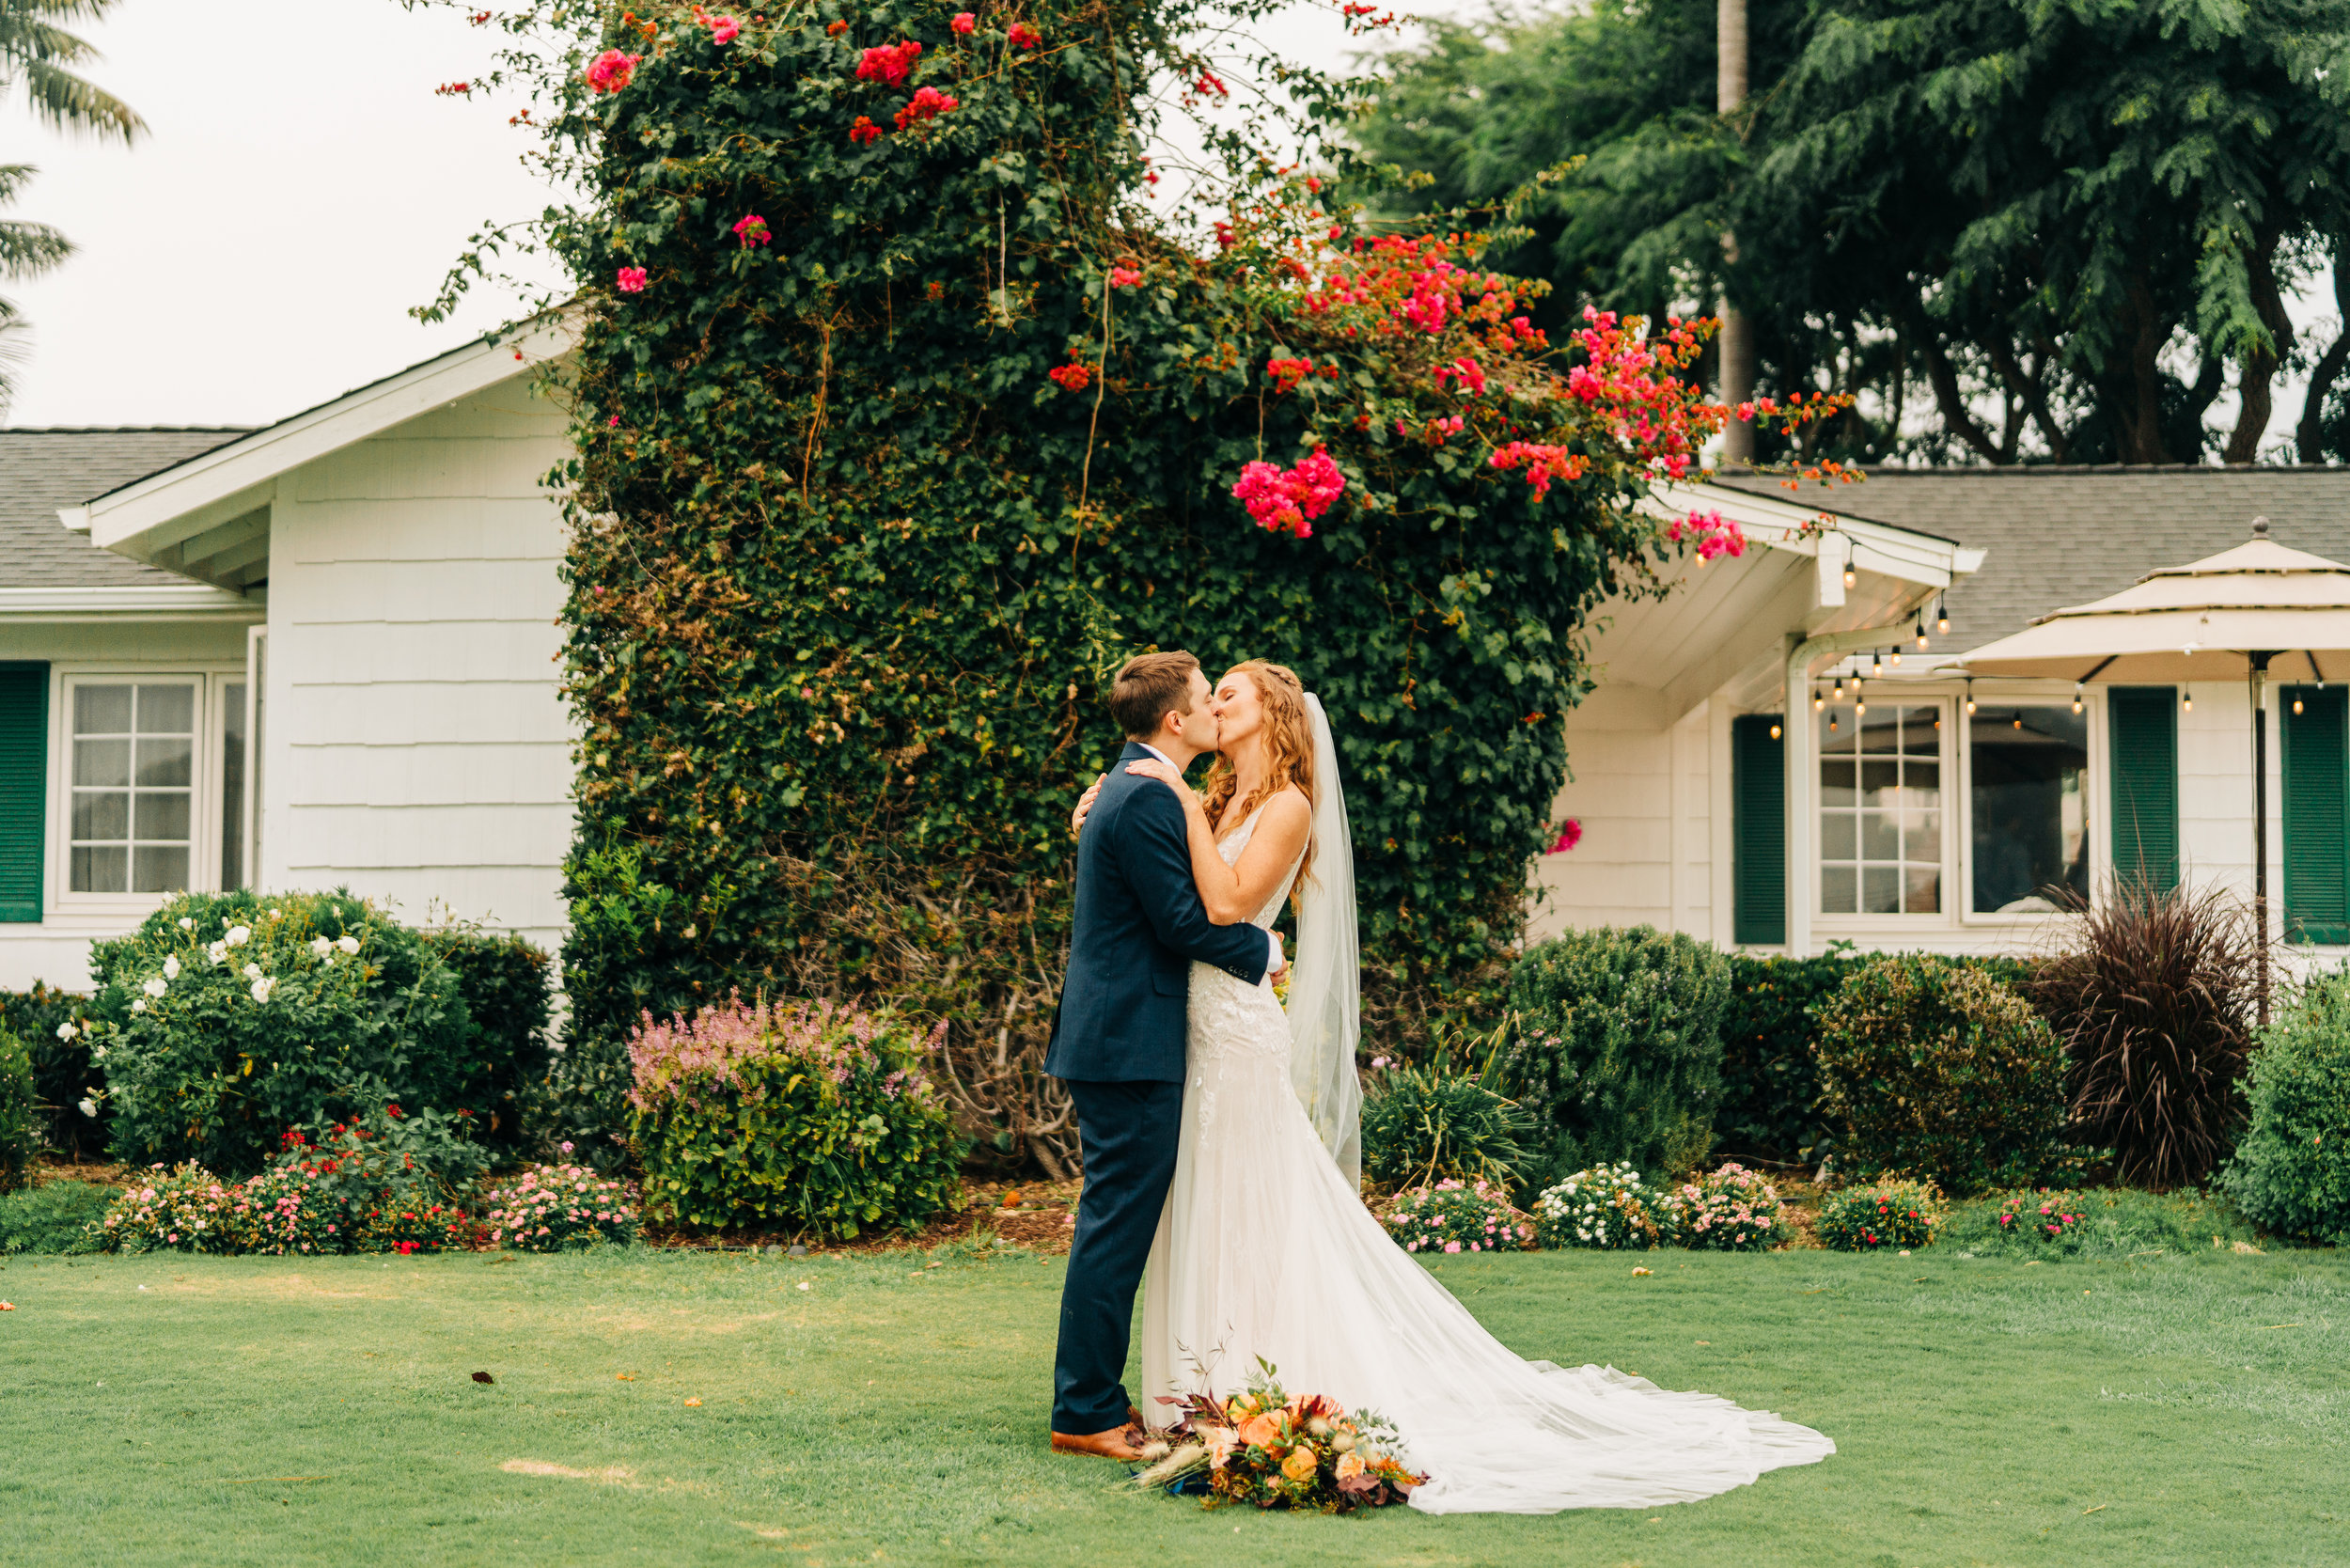 www.santabarbarawedding.com | Brandon Bibbins Photography | The Cottages at Polo Run | Christina Welch Floral | Couple Shares Kiss